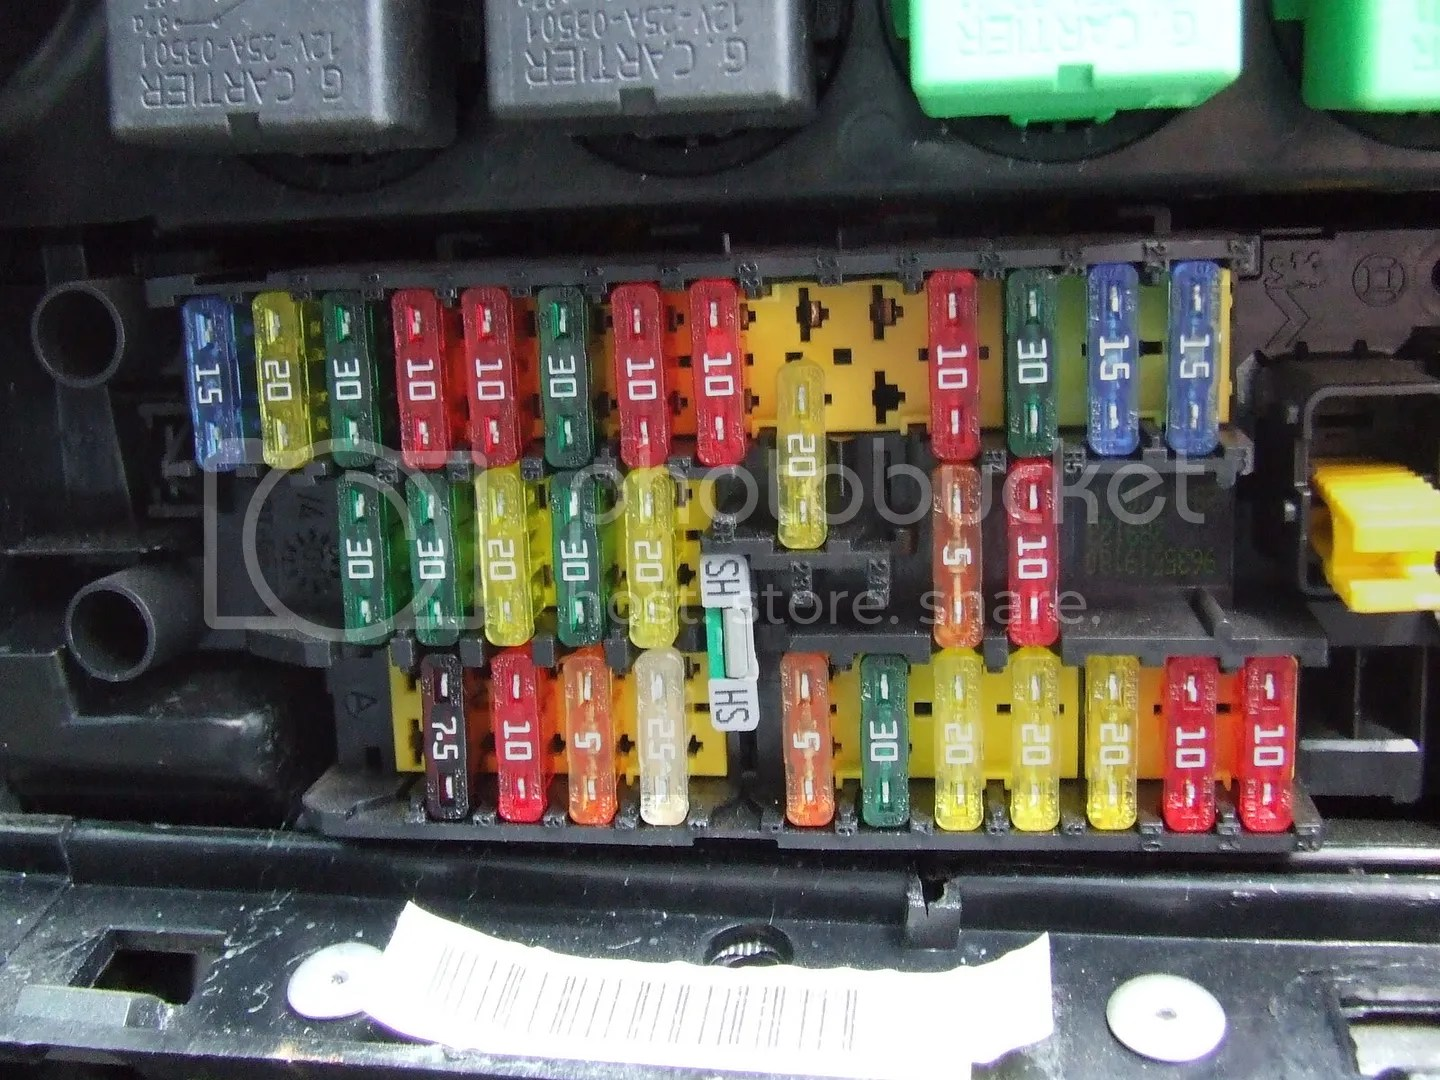 hight resolution of peugeot 306 fuse box layout wiring diagrams for mix peugeot 306 fuse box map wiring diagram